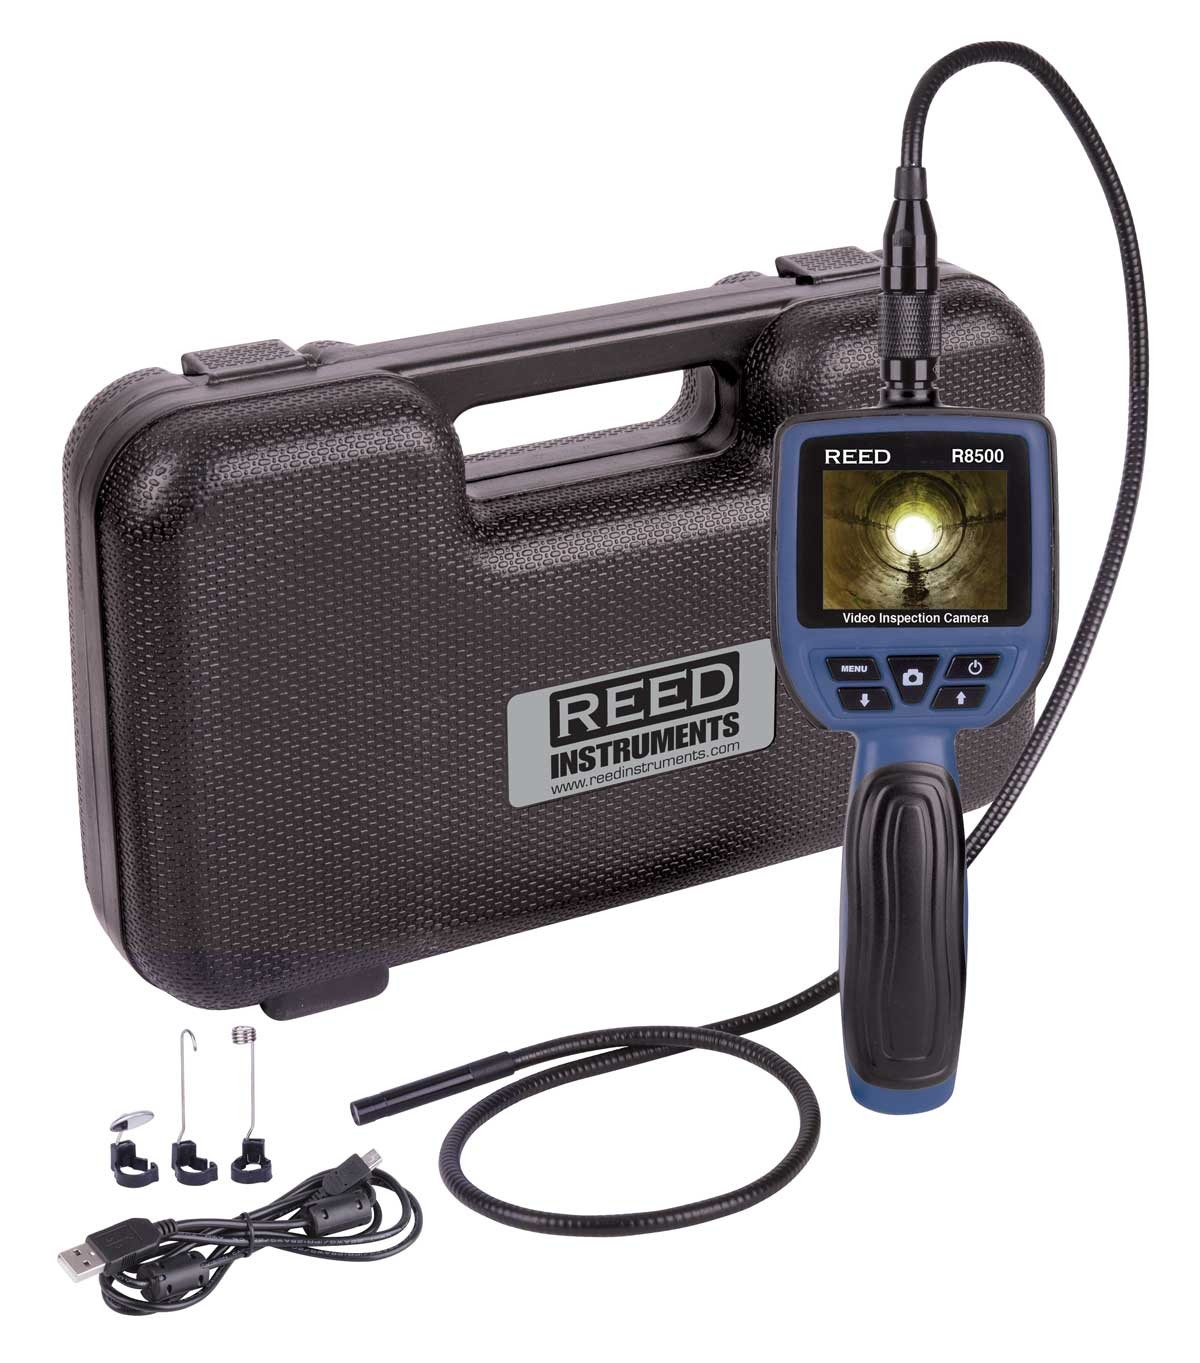 REED R8500 Recordable 9mm Video Inspection Camera-REED R8500 3